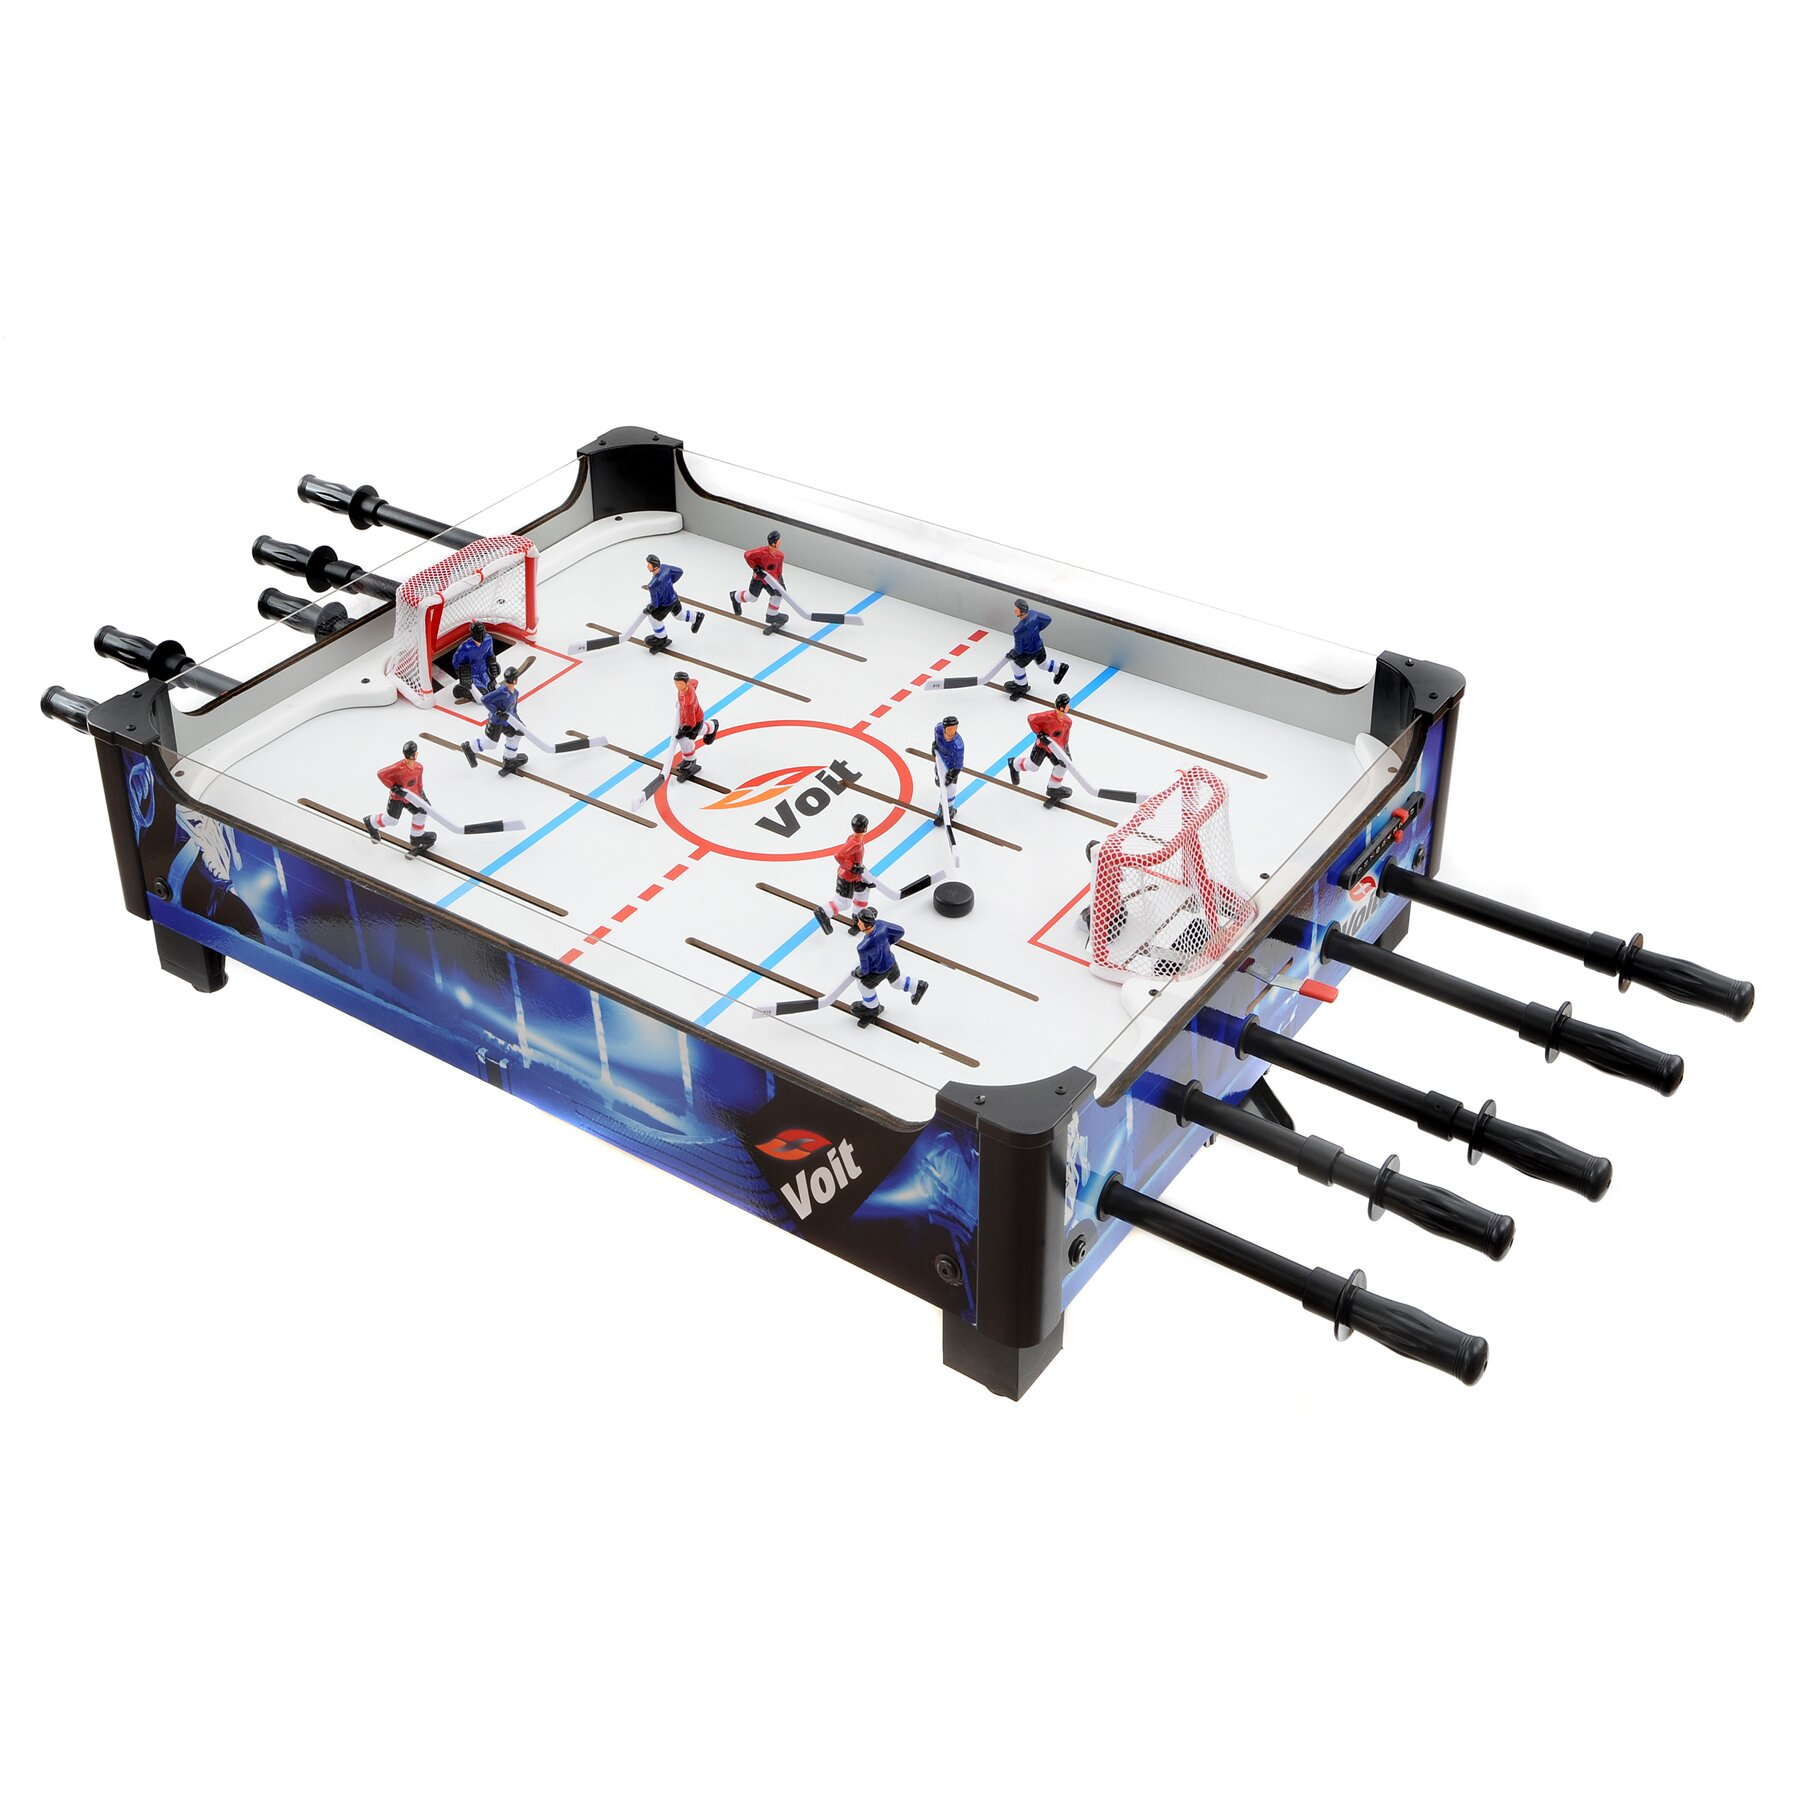 Voit 33 top rod hockey game table reviews wayfair for 12 in 1 game table walmart